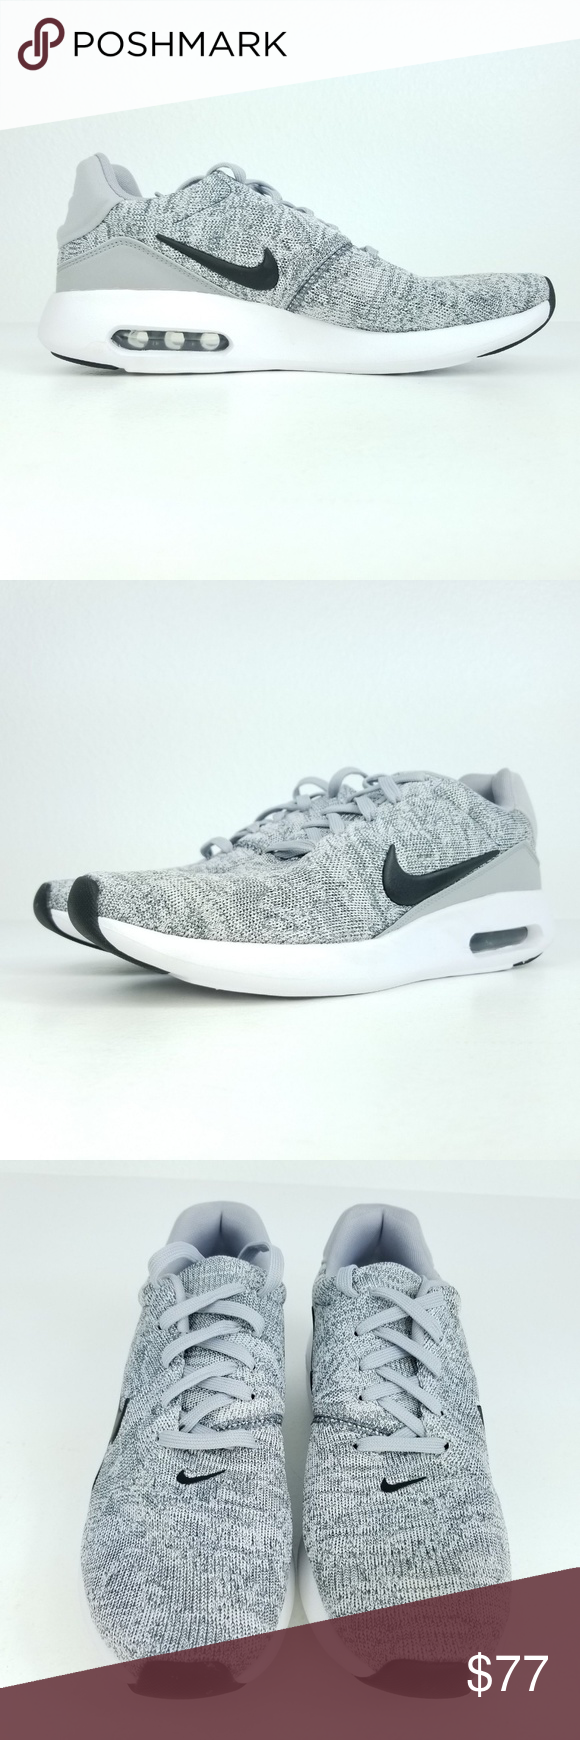 0e745343f9 NIKE Air Max Modern Flyknit Mens Shoes Grey Product Name: Air Max Modern  Flyknit Style Number: 876066 001 Size: 9.5,10.5 Color: Grey Black White  •Brand new ...